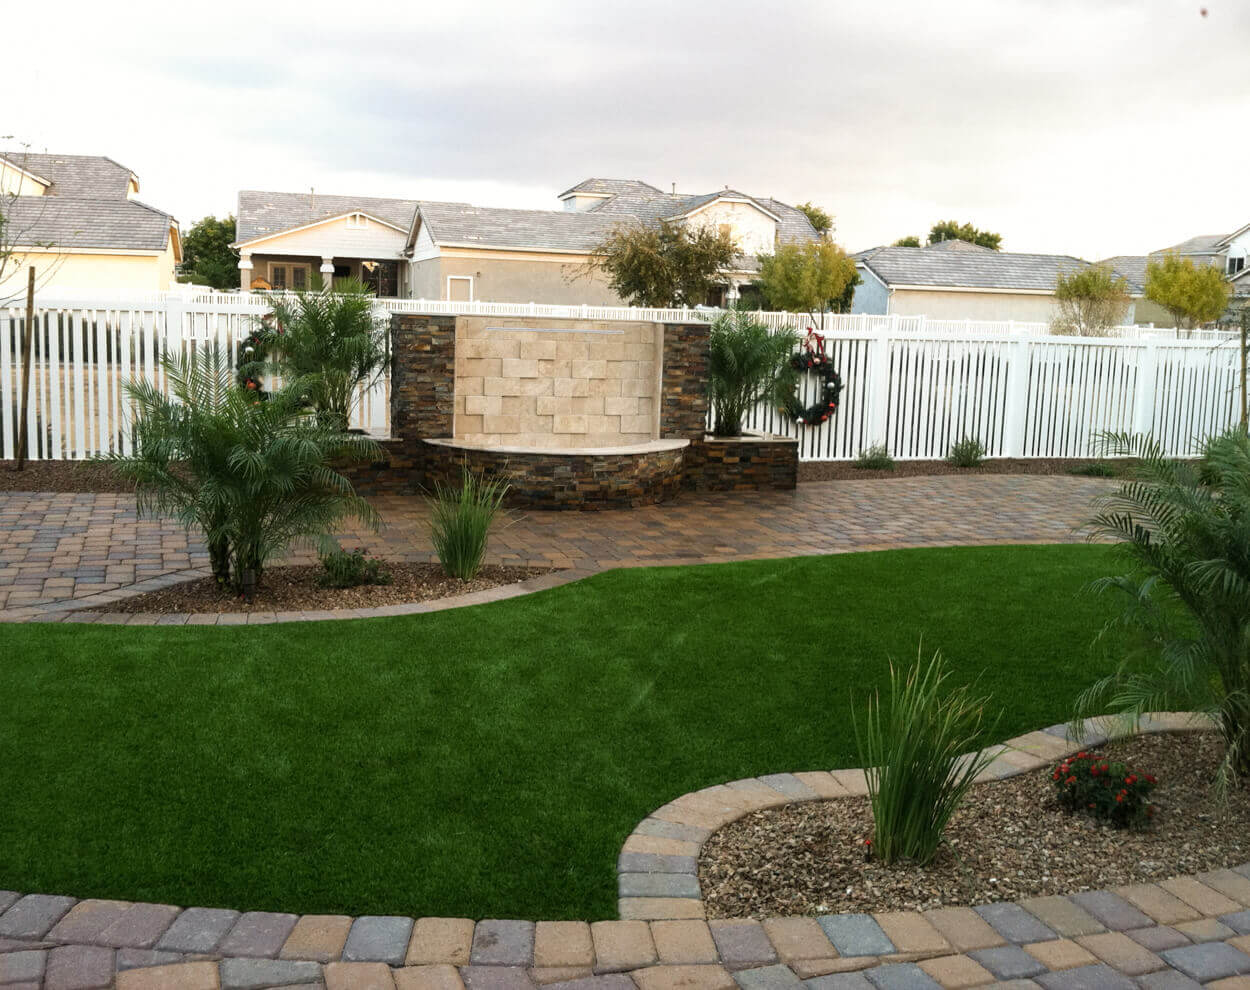 5 Desert Landscaping Ideas to Upgrade Your Property on Desert Landscape Ideas For Backyards id=51383